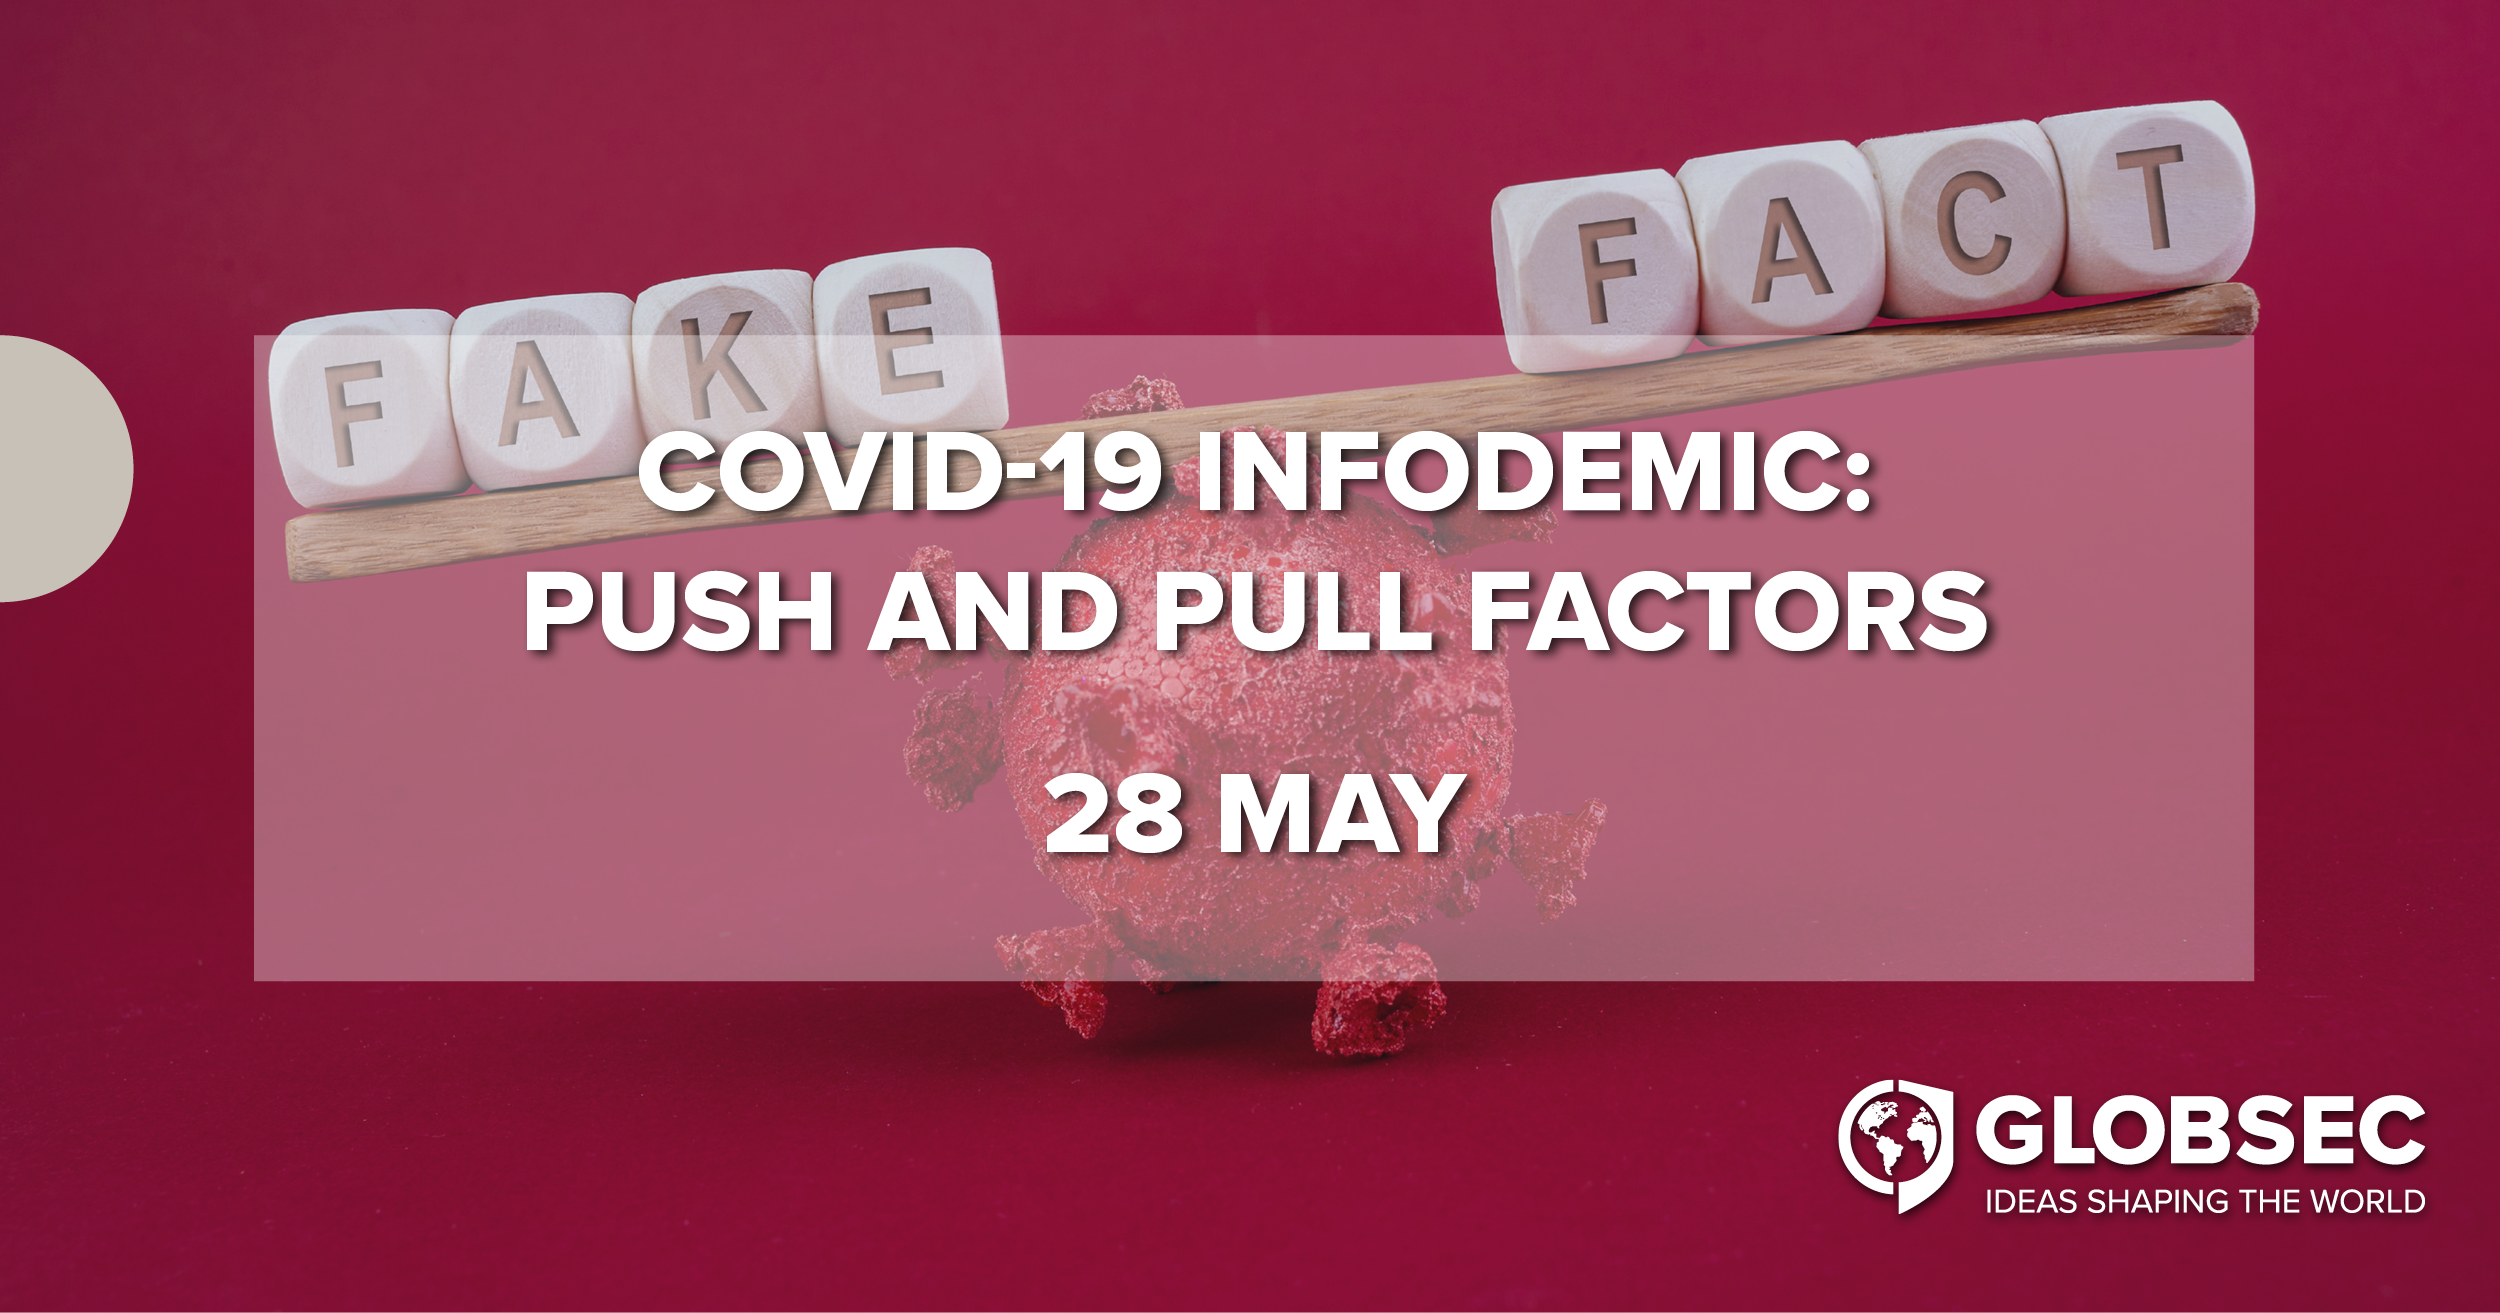 COVID-19 Infodemic: Push and Pull factors